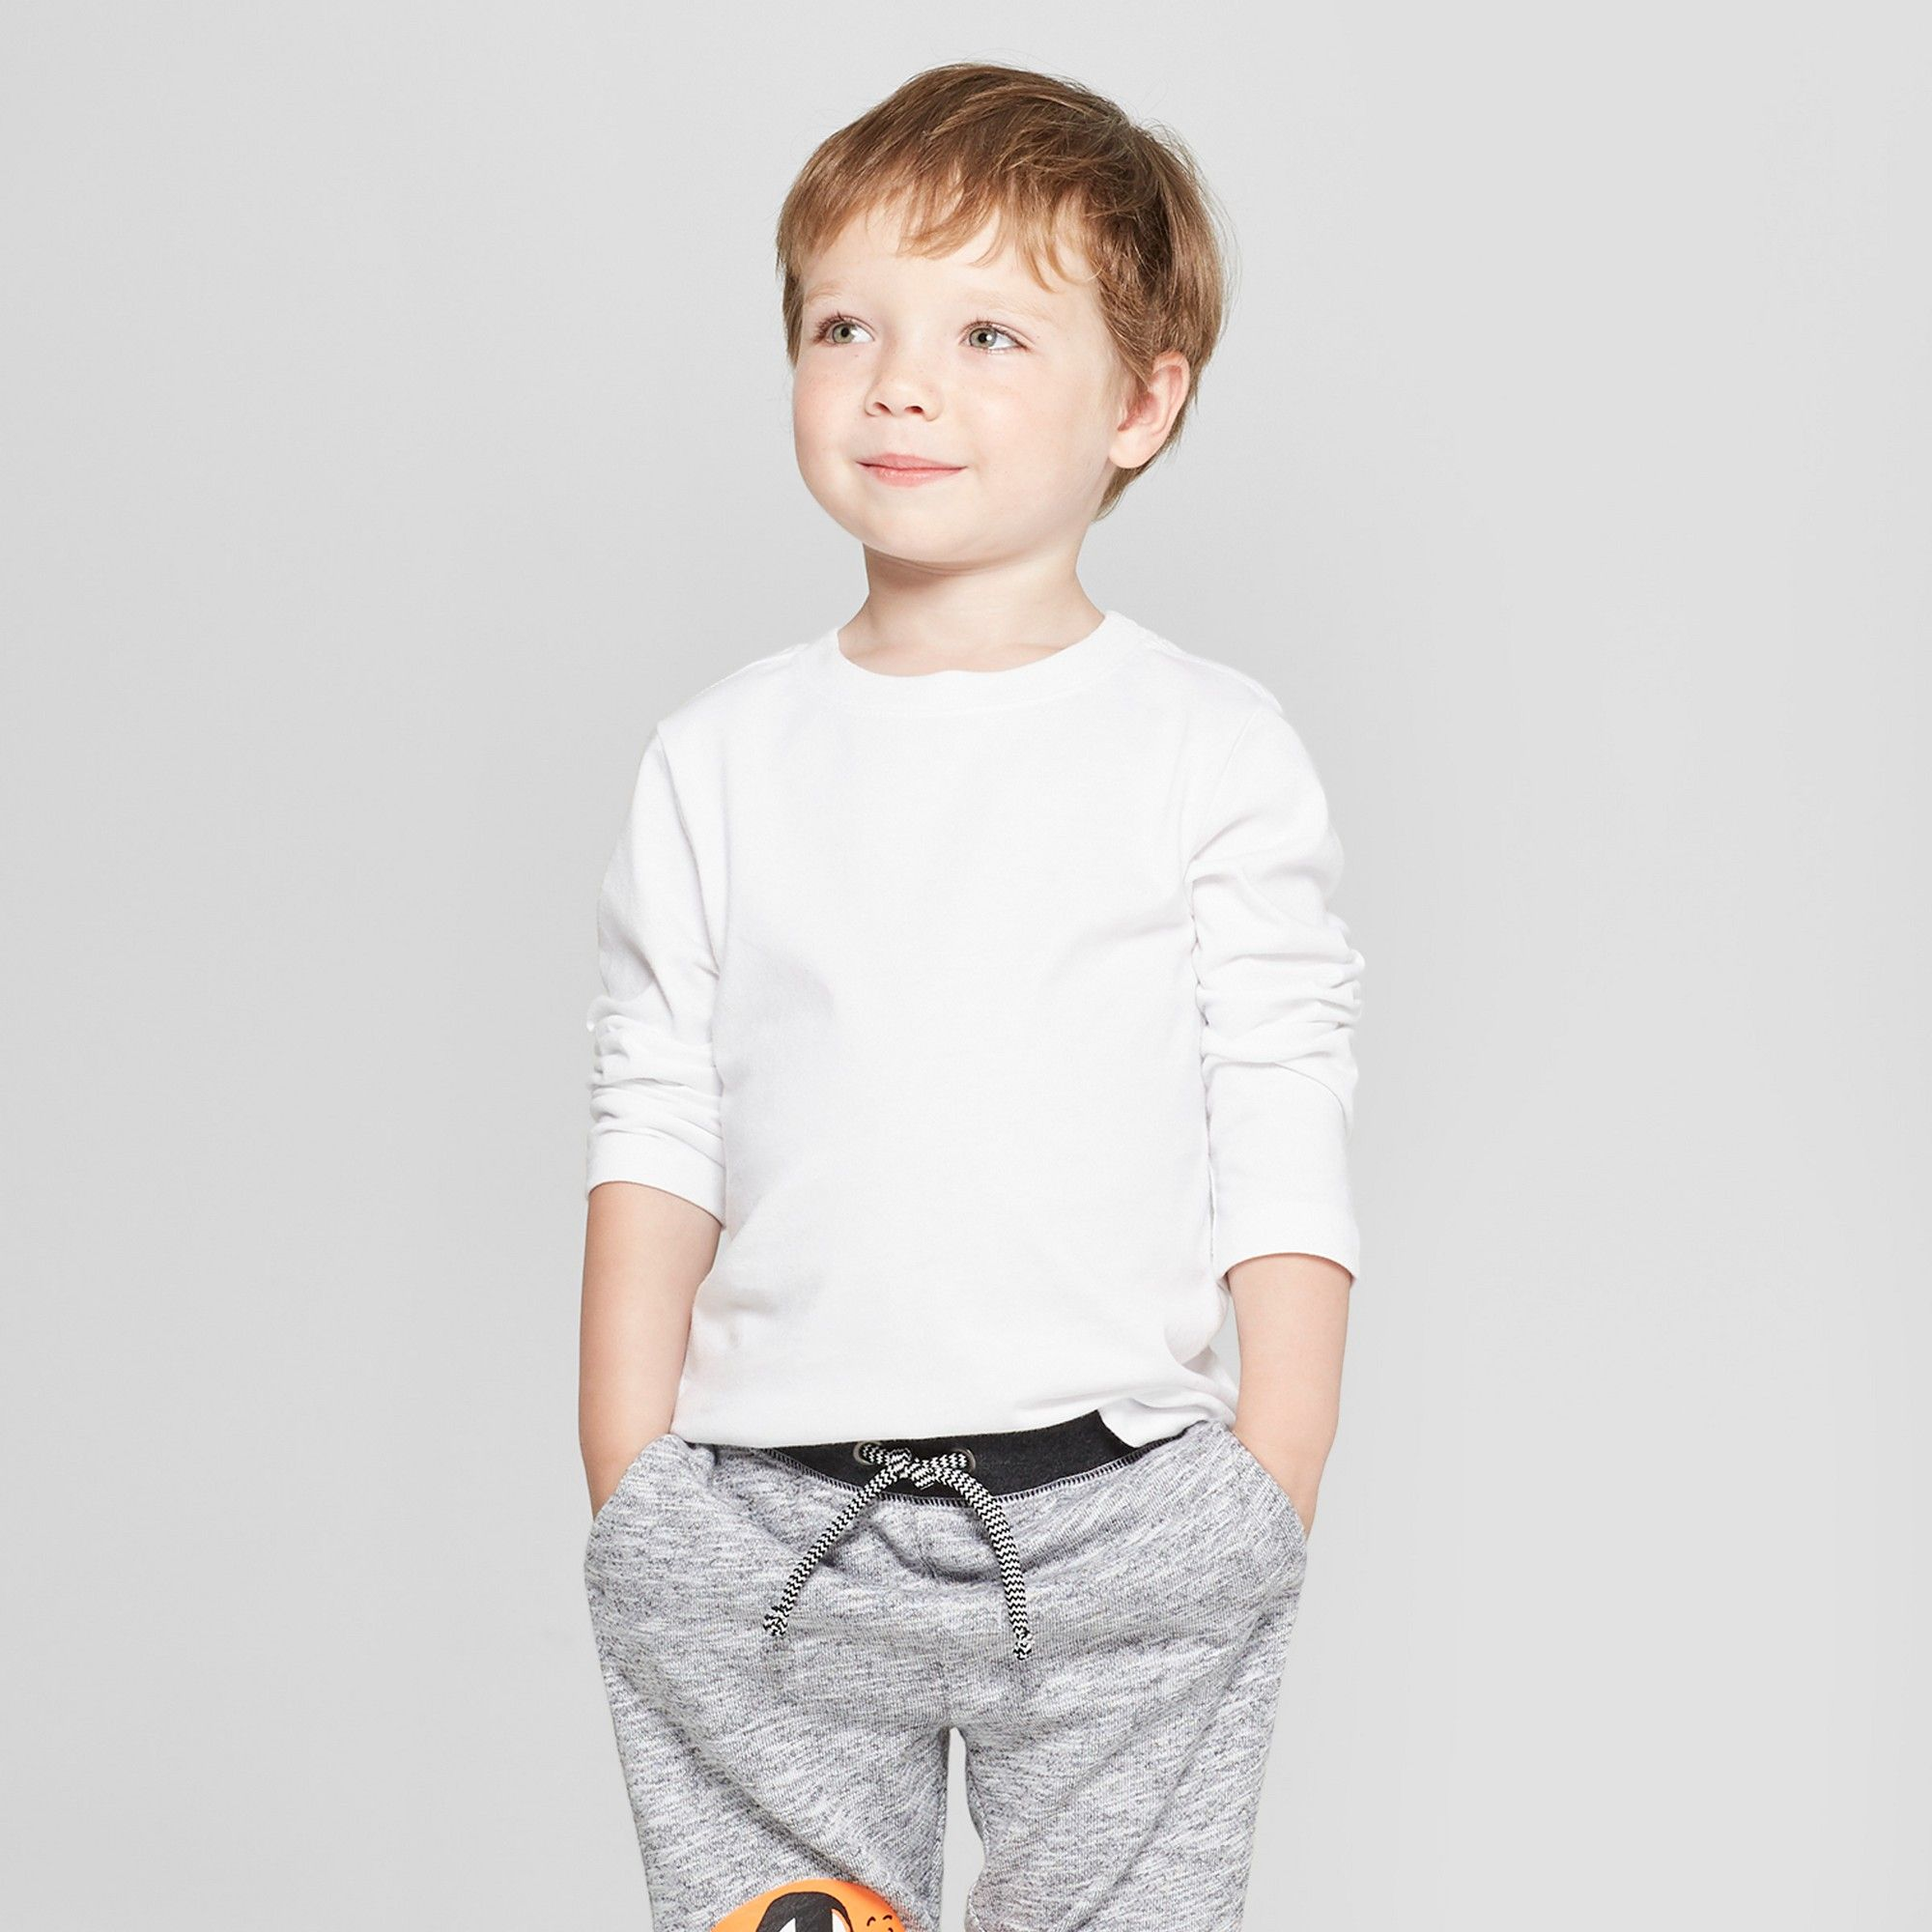 930f5123 Toddler Boys' Long Sleeve T-Shirt - Cat & Jack White 12M | Products ...